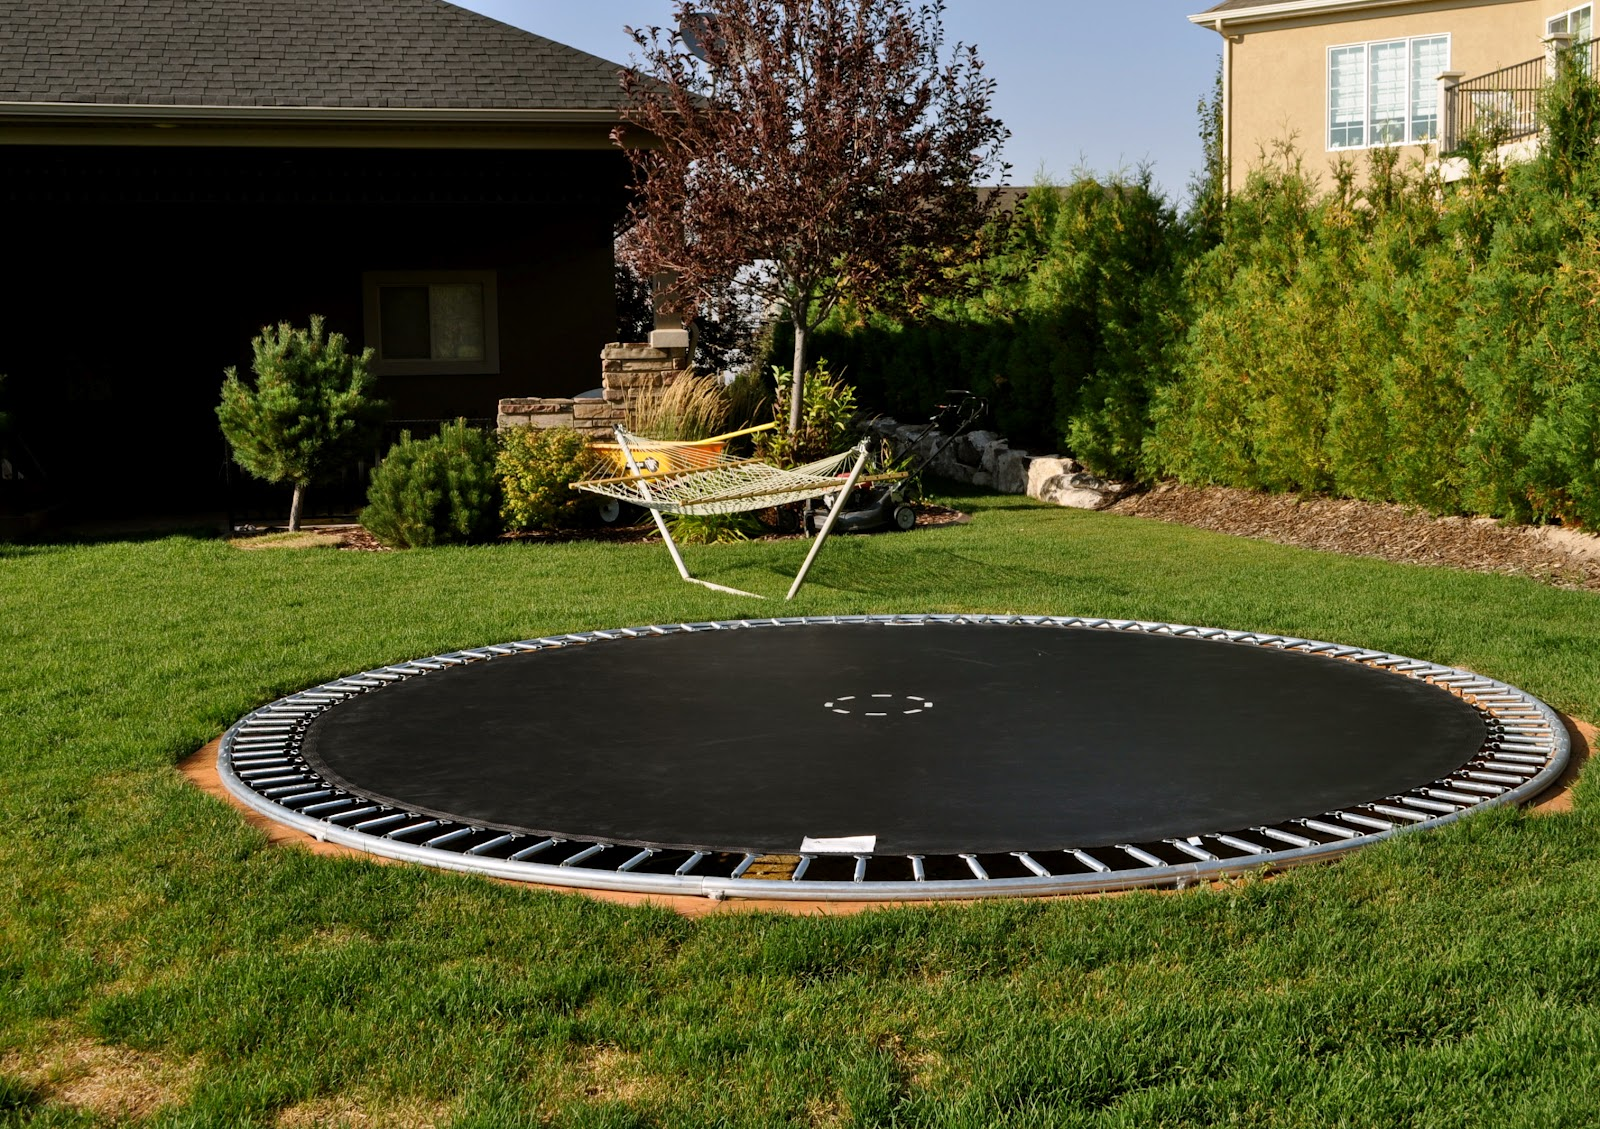 1000+ images about Trampolines on Pinterest